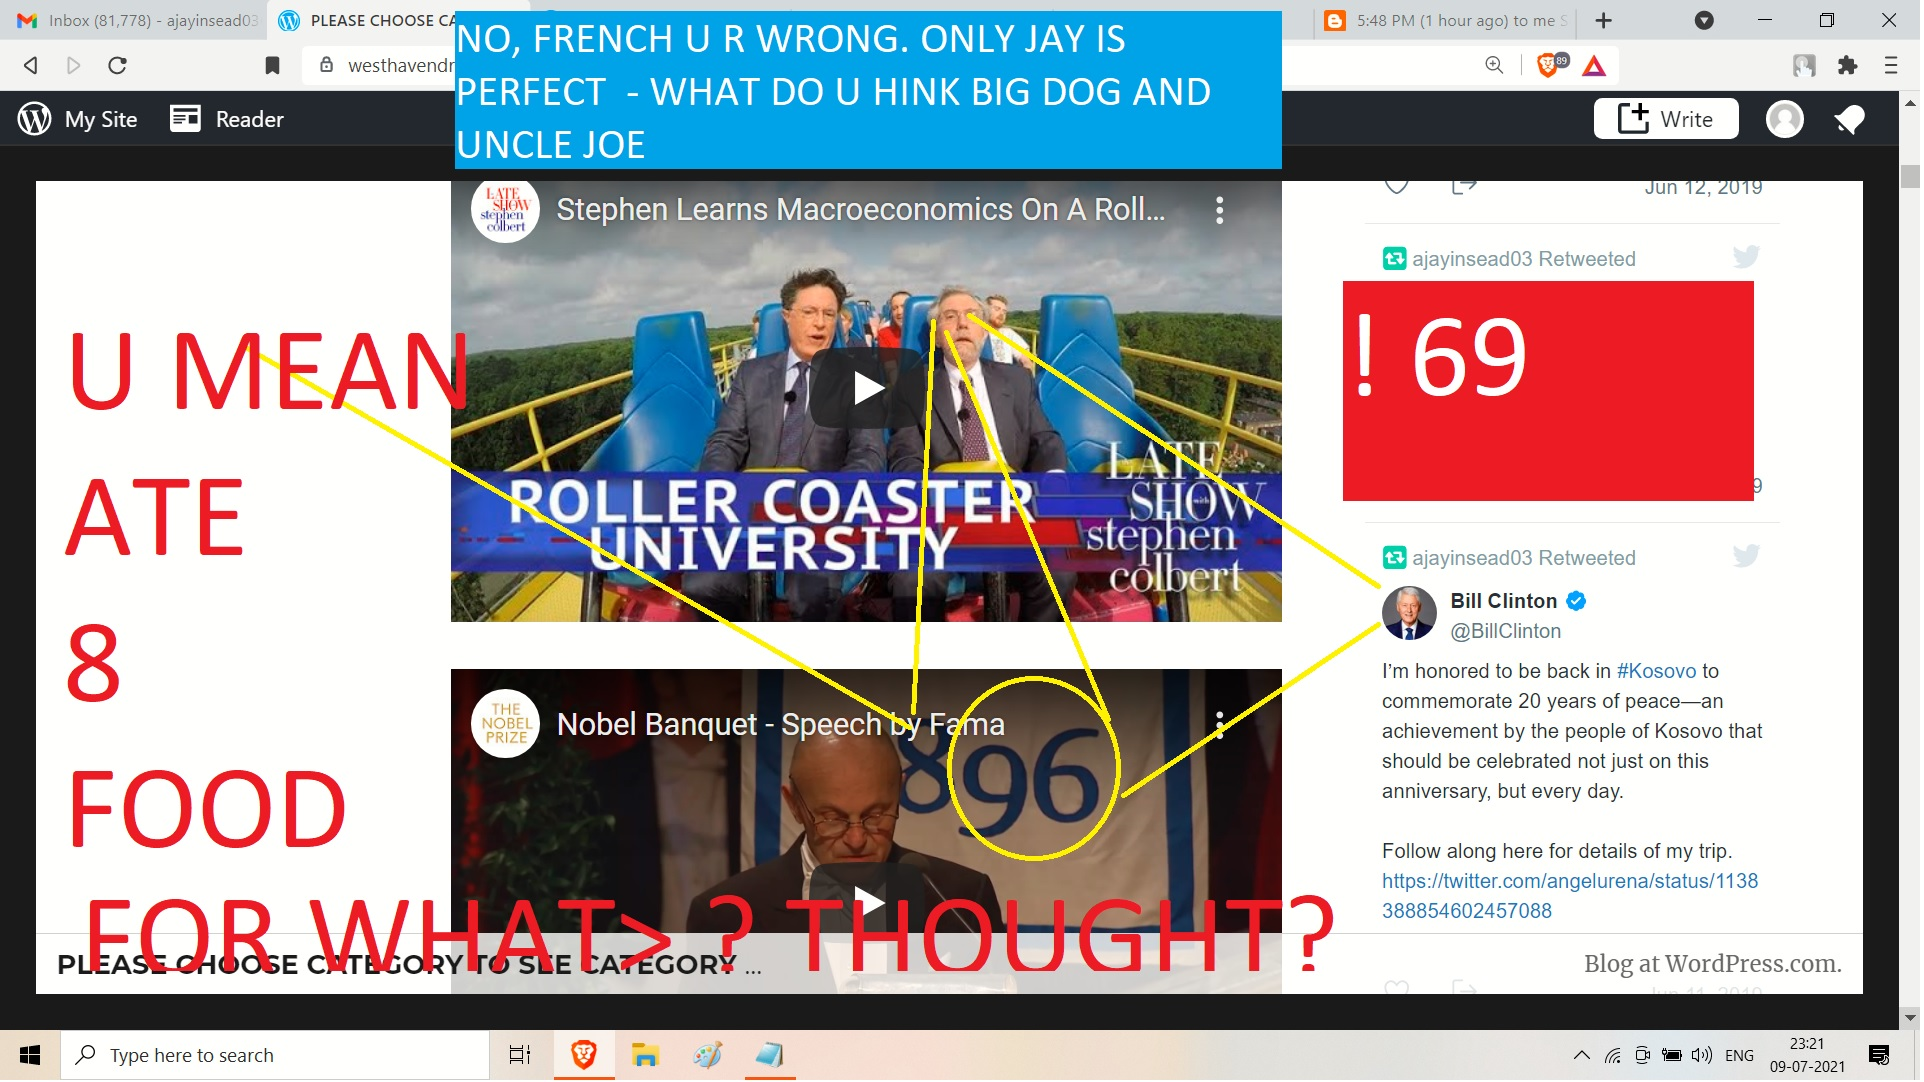 to pail krigman from alina mastenkoa dn ajay mishra cc bill clinton NO, FRENCH U R WRONG. ONLY JAY IS PERFECT - WHAT DO U HINK BIG DOG AND UNCLE JOE